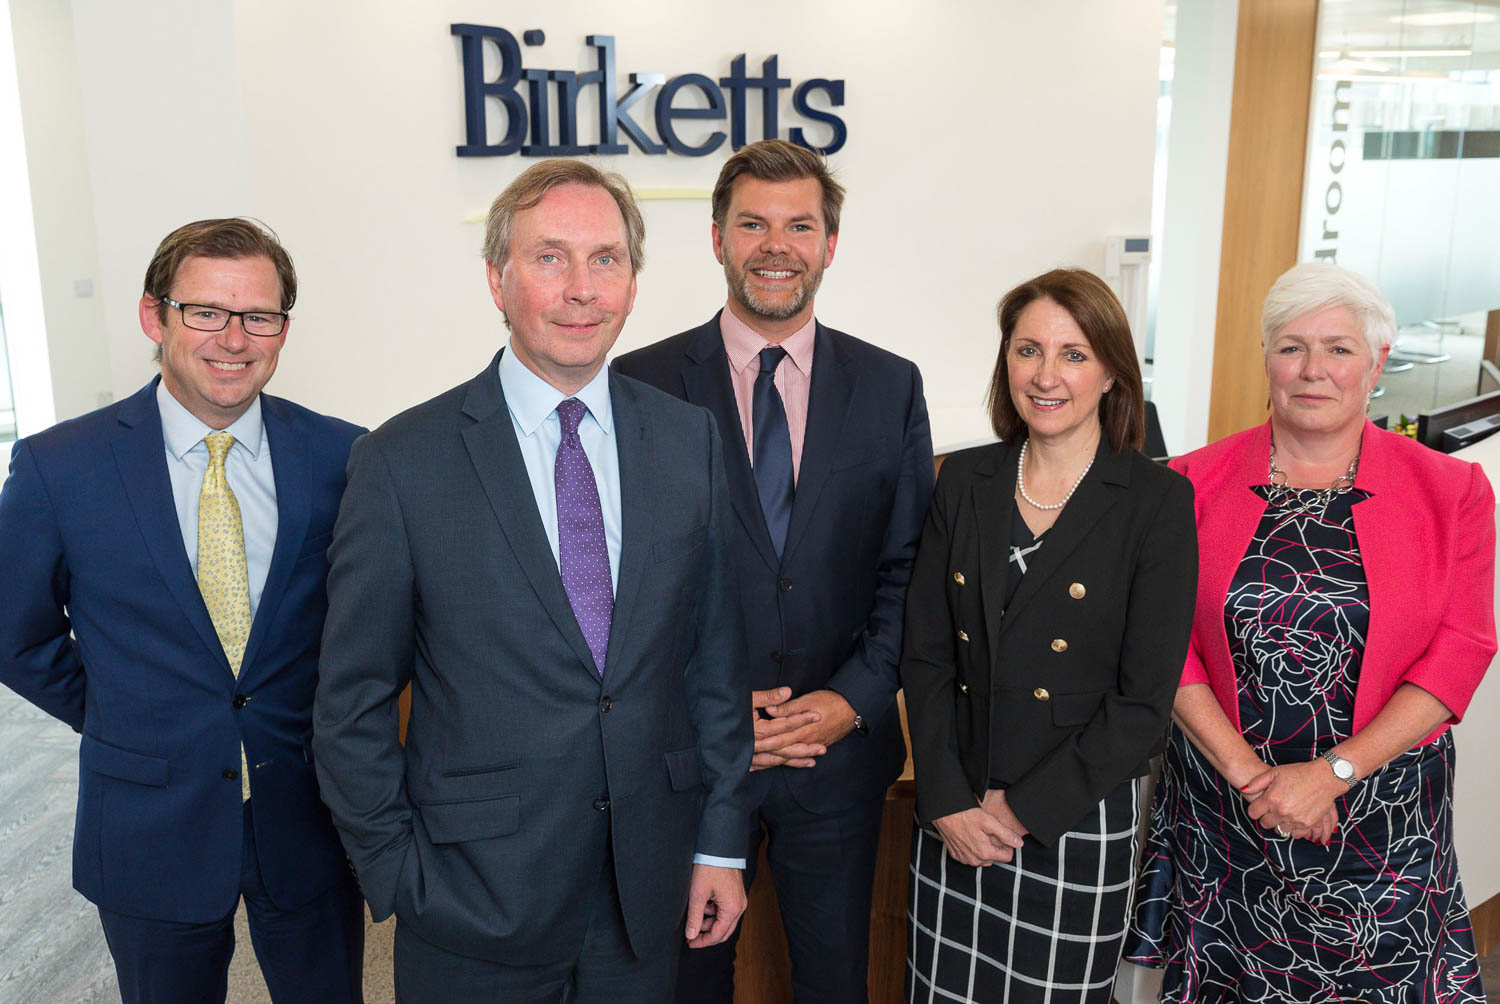 Birketts staff group photo in Cambridge